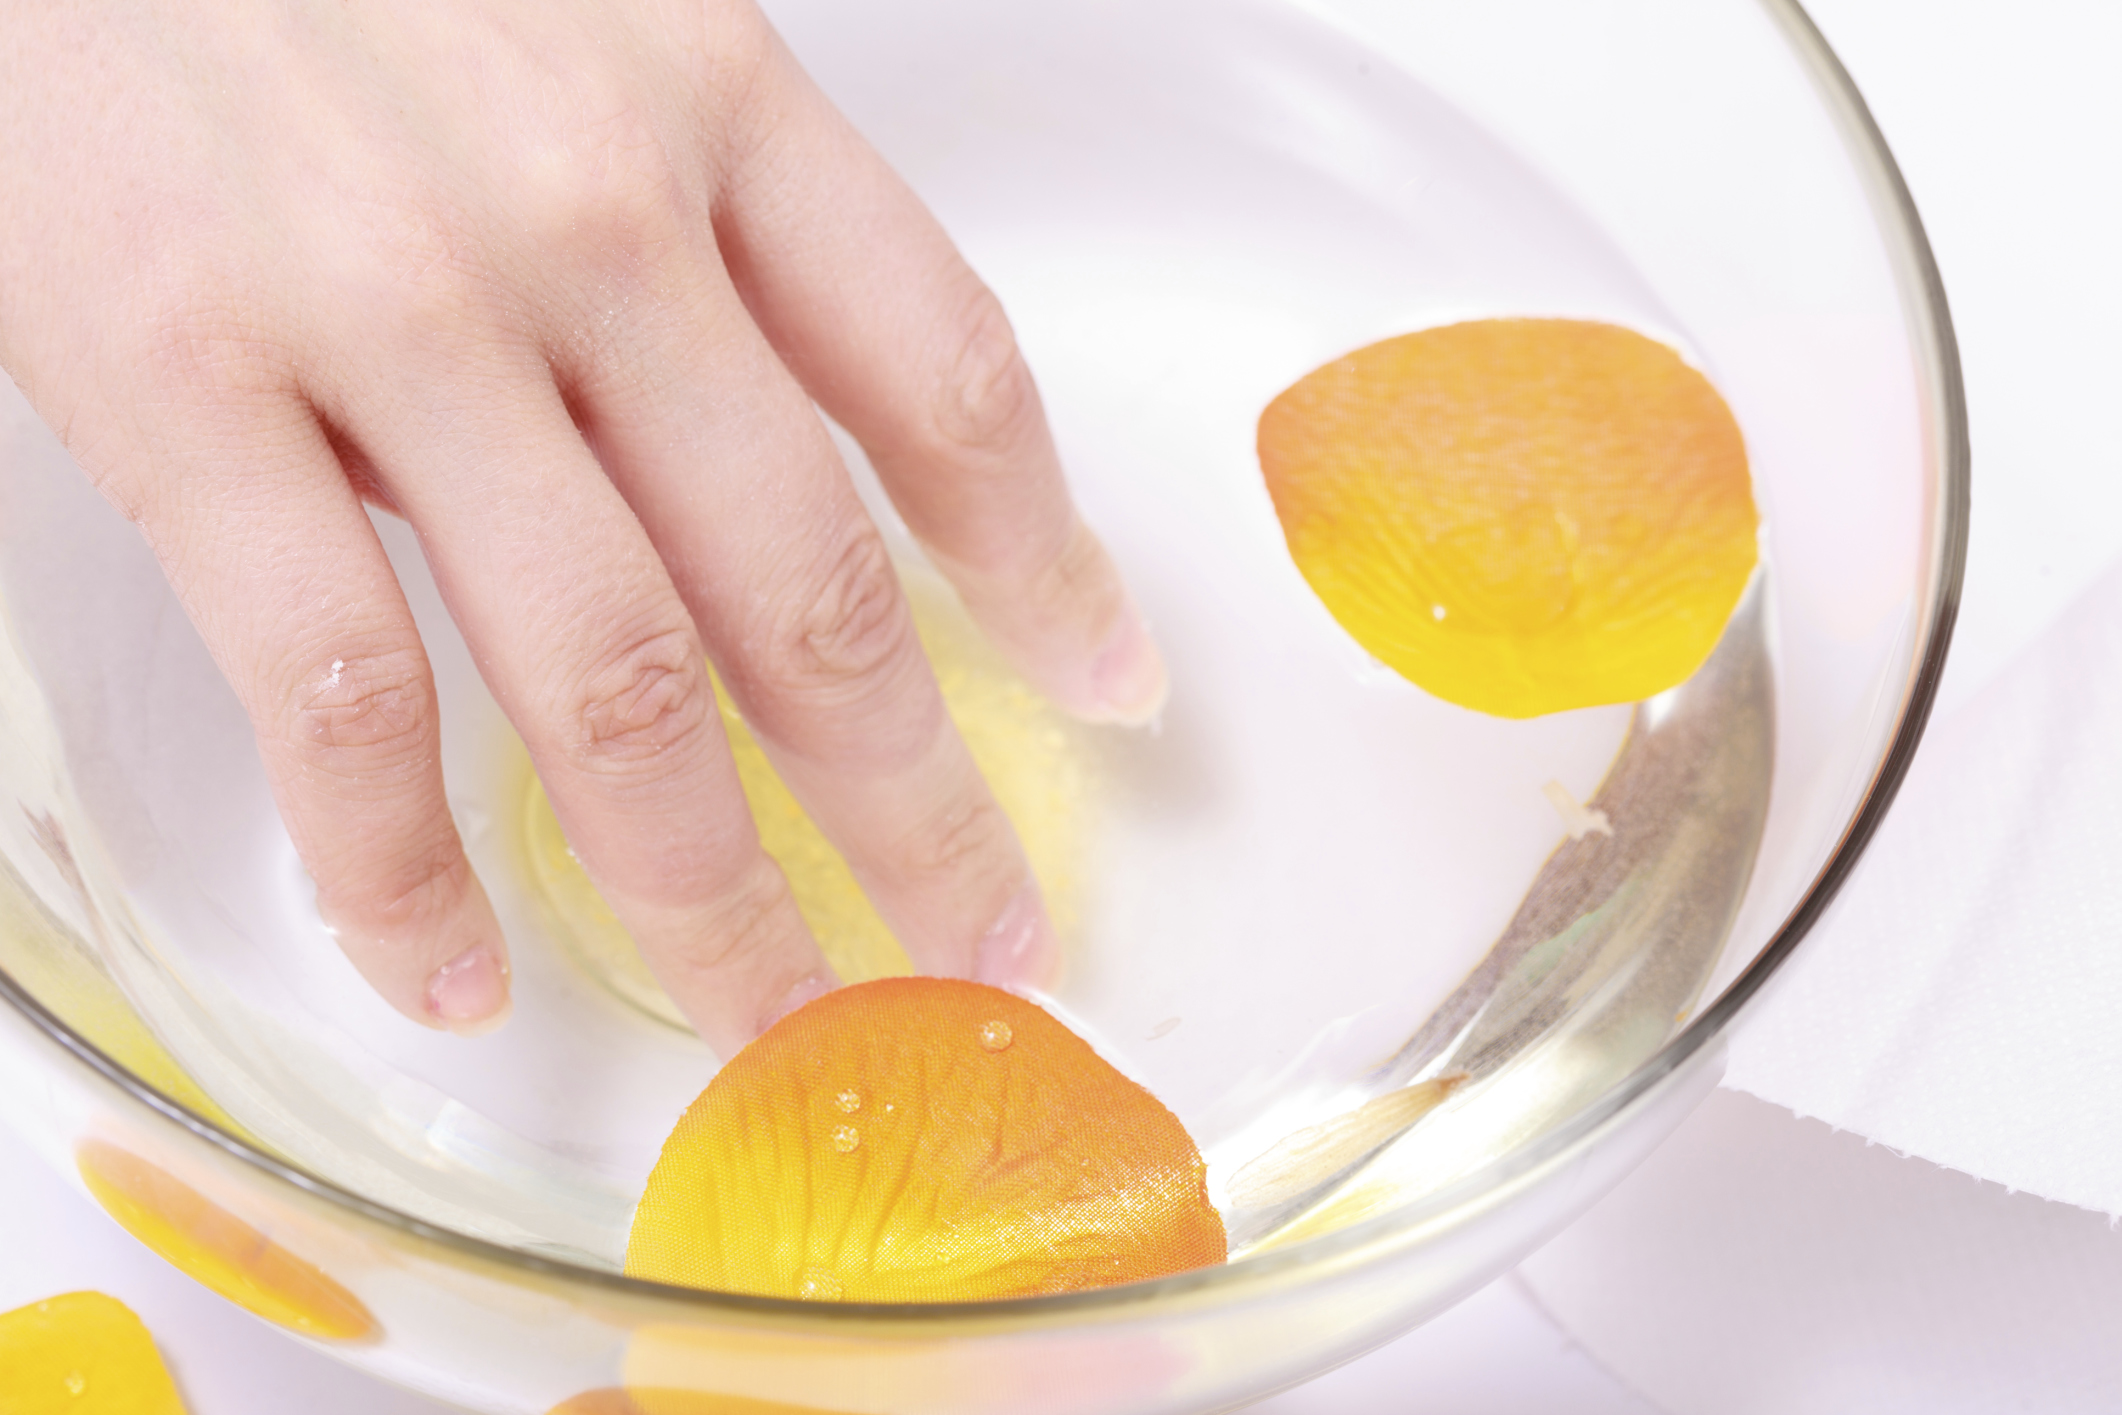 How to Soak Nails in Lemon Juice to Whiten Them | LEAFtv